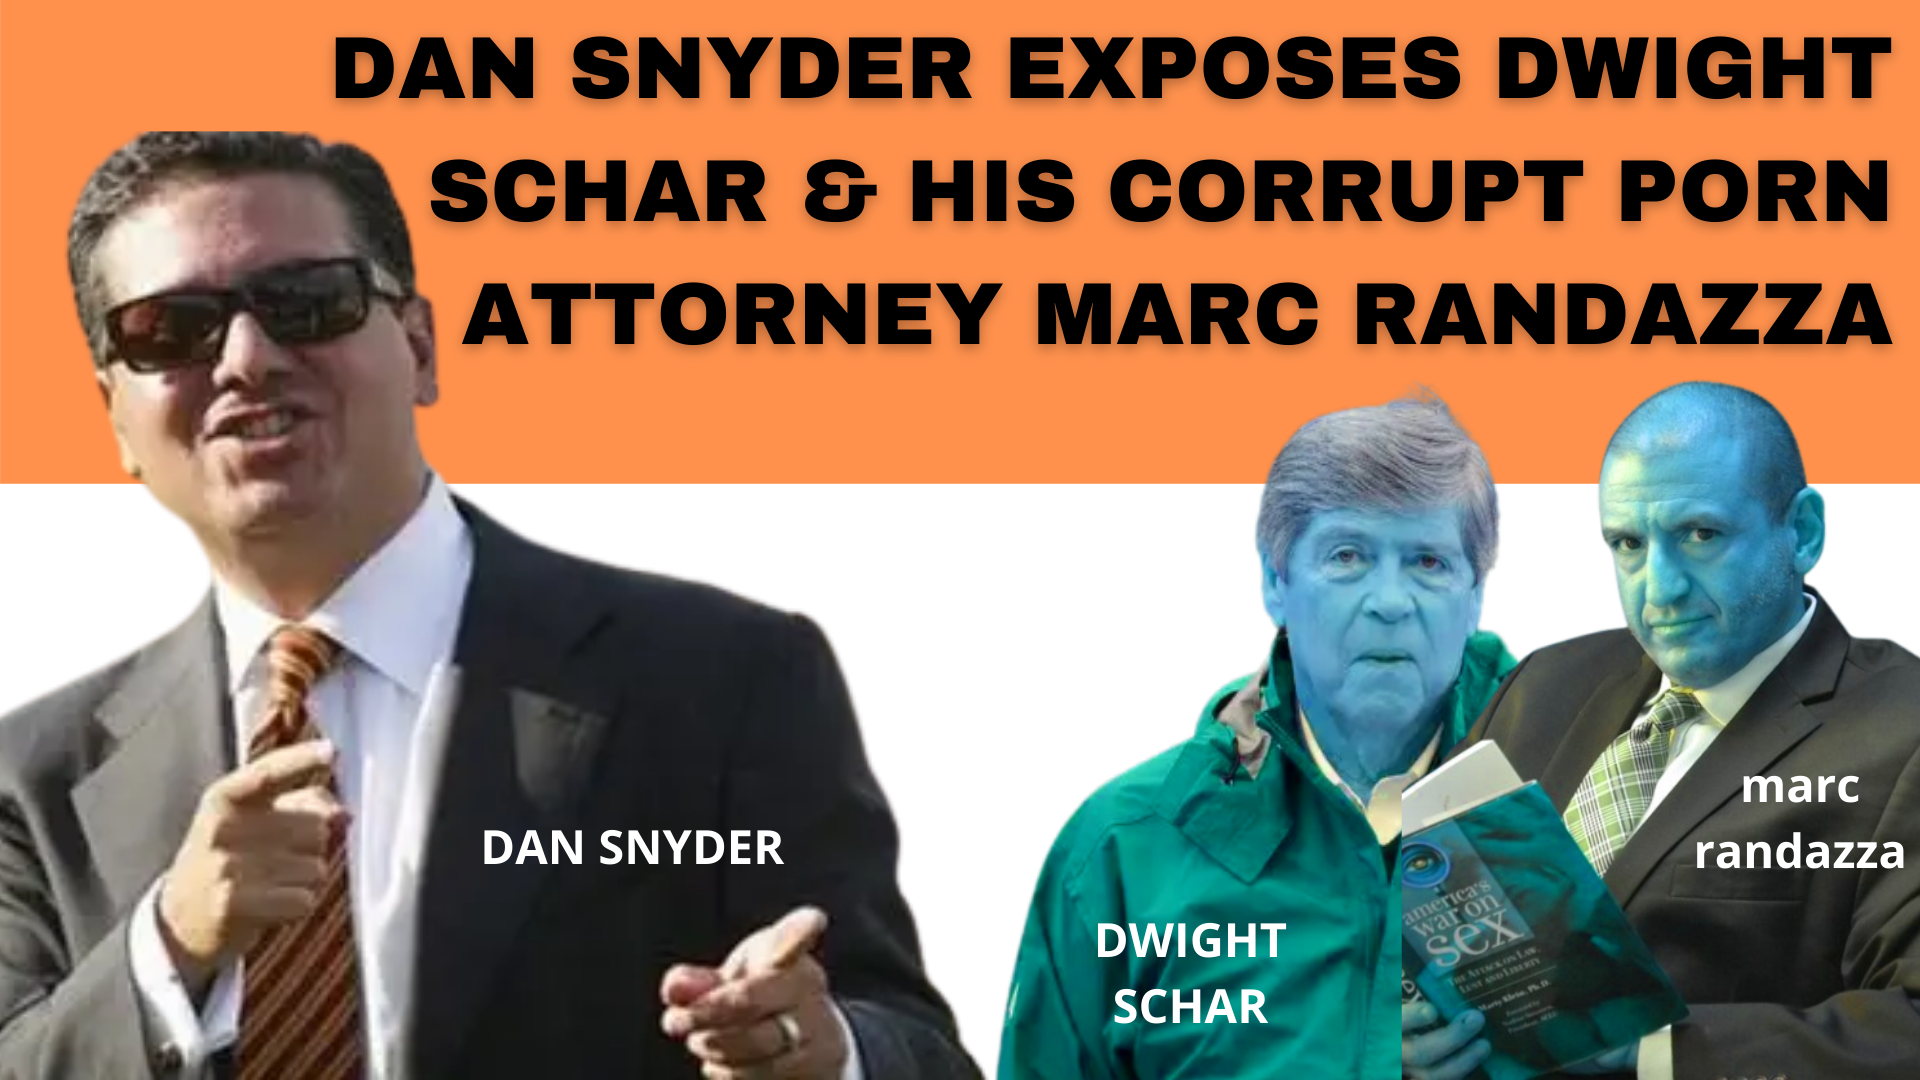 Dan Snyder, Don Juravin and Richard Arrighi EXPOSE Dwight Schar and his porn corrupt attonrey Marc Randazza